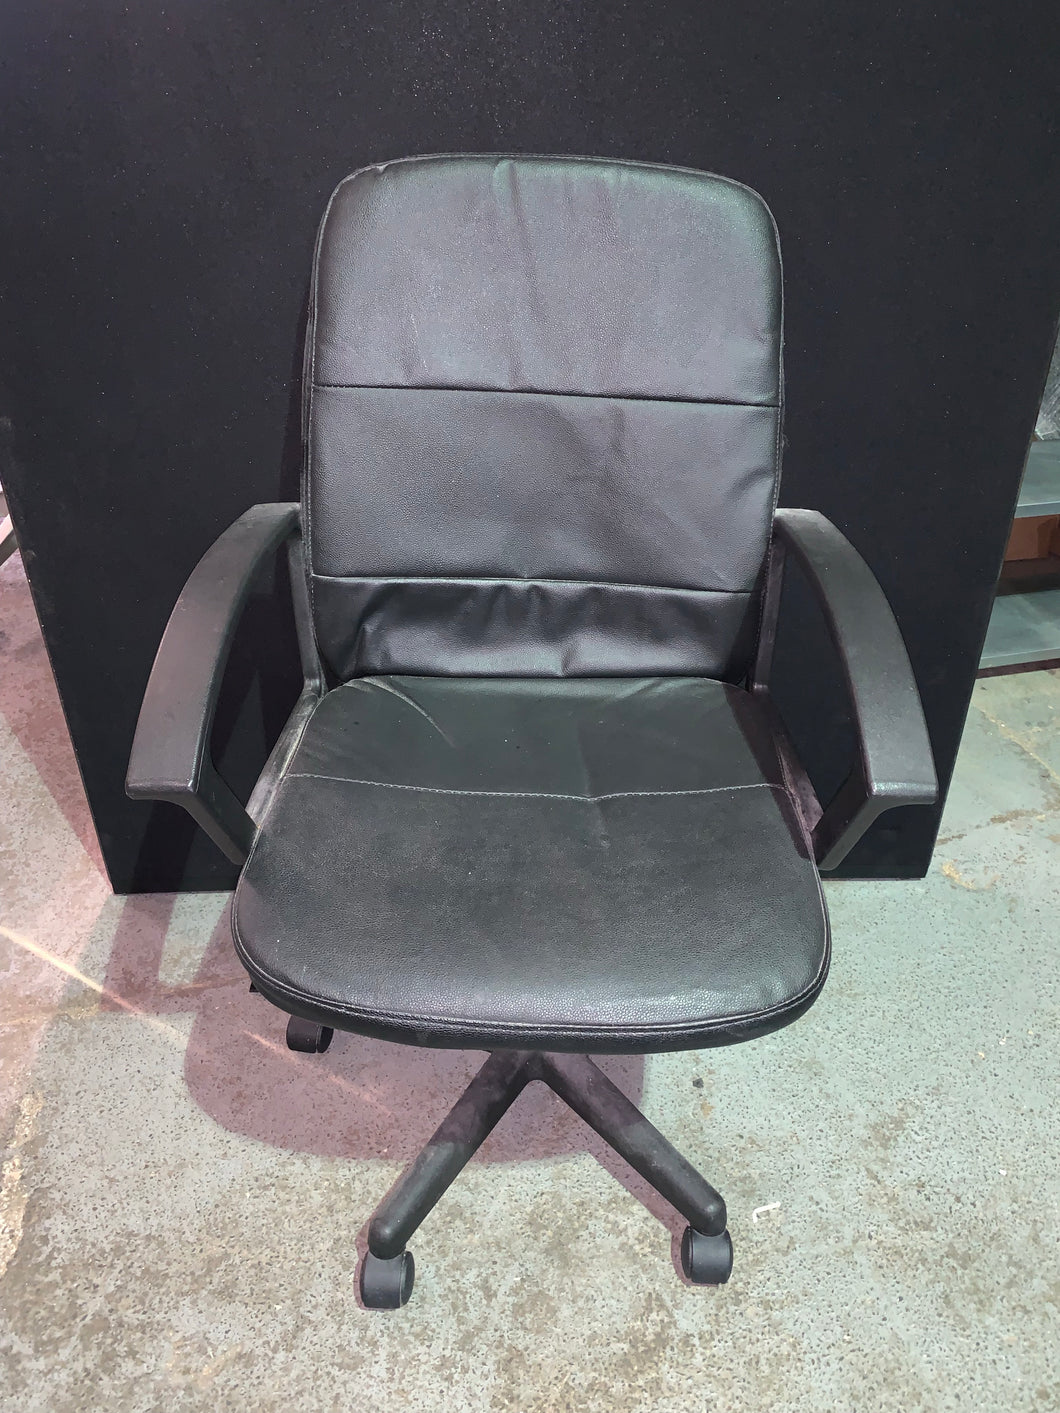 Black Faux Leather Office Chair With Arms - Flogit2us.com